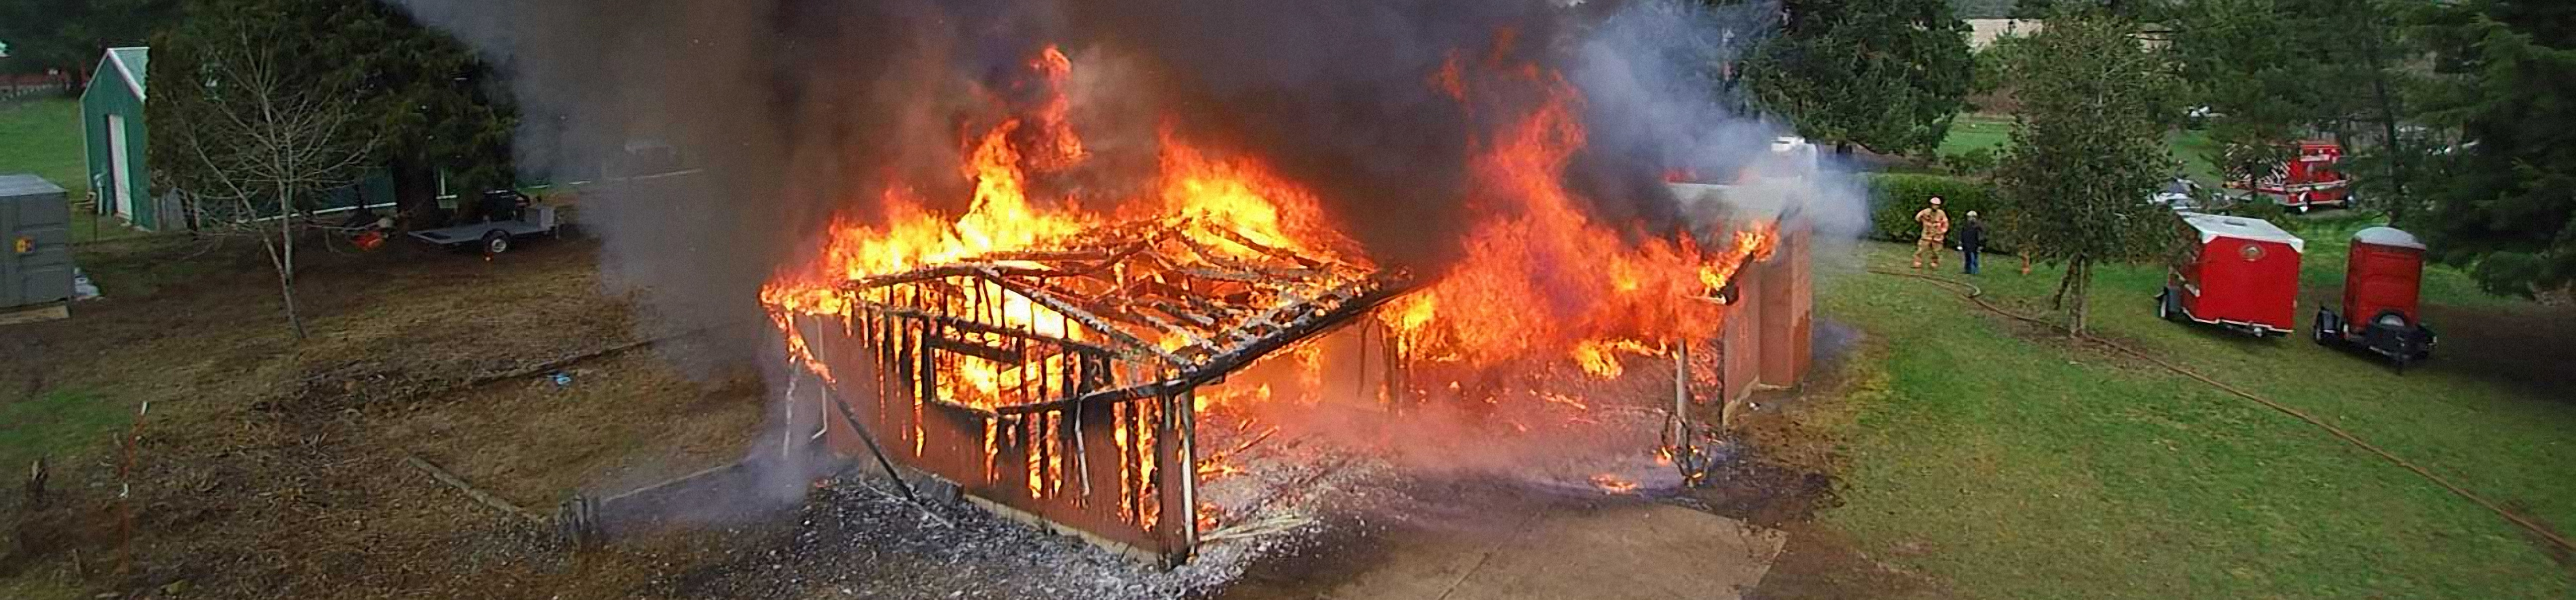 Using sUAS to observe structure engulfed in flames